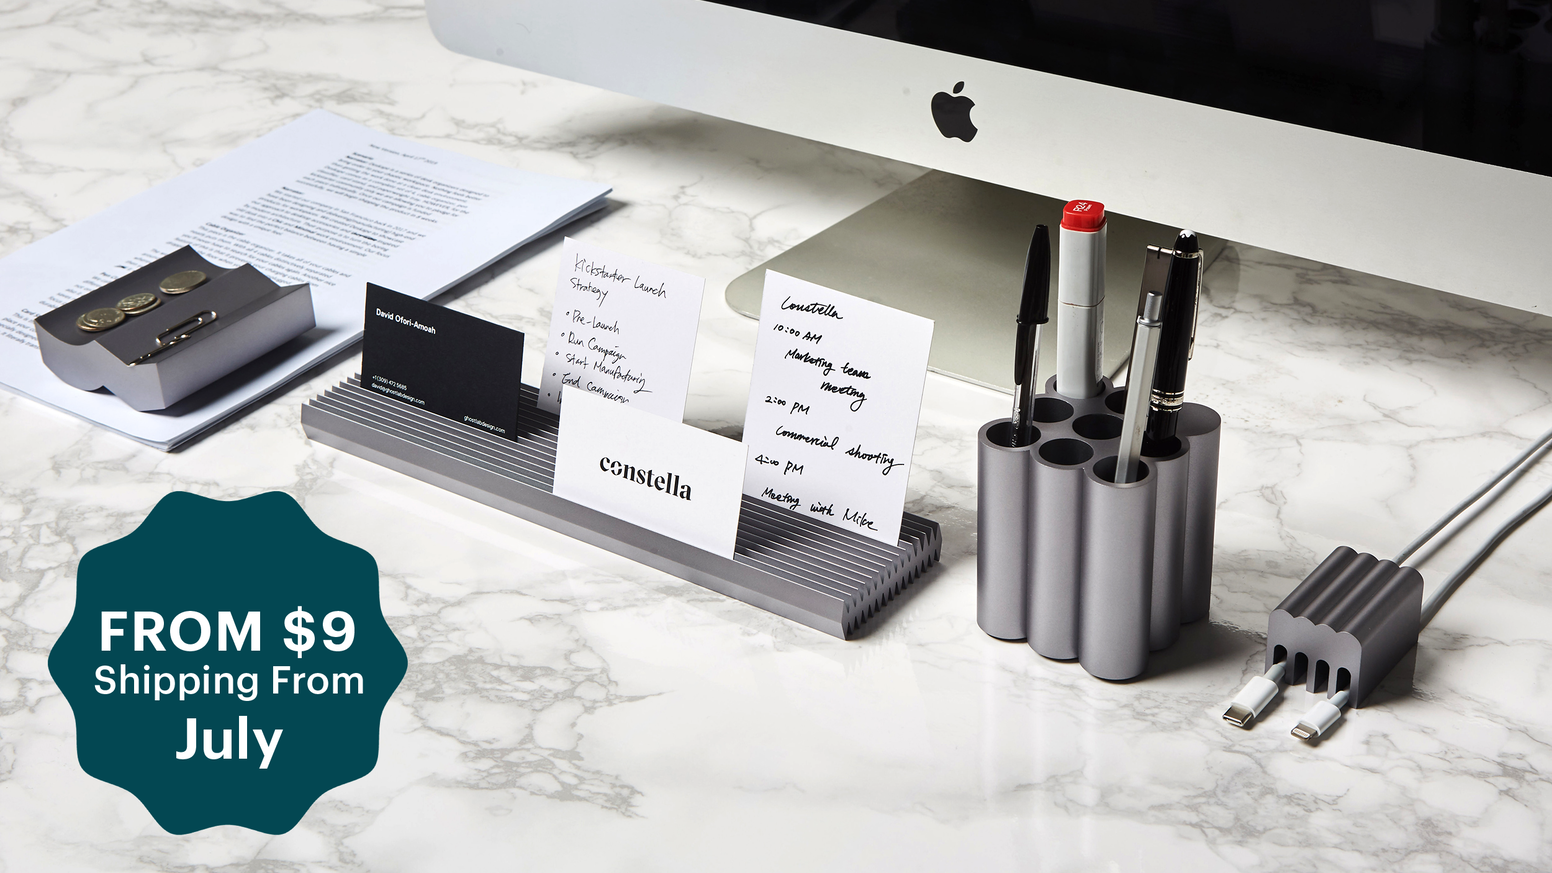 Aluminum desk organizers with clean, sleek, and modern design. Bring elegance to your workspace.